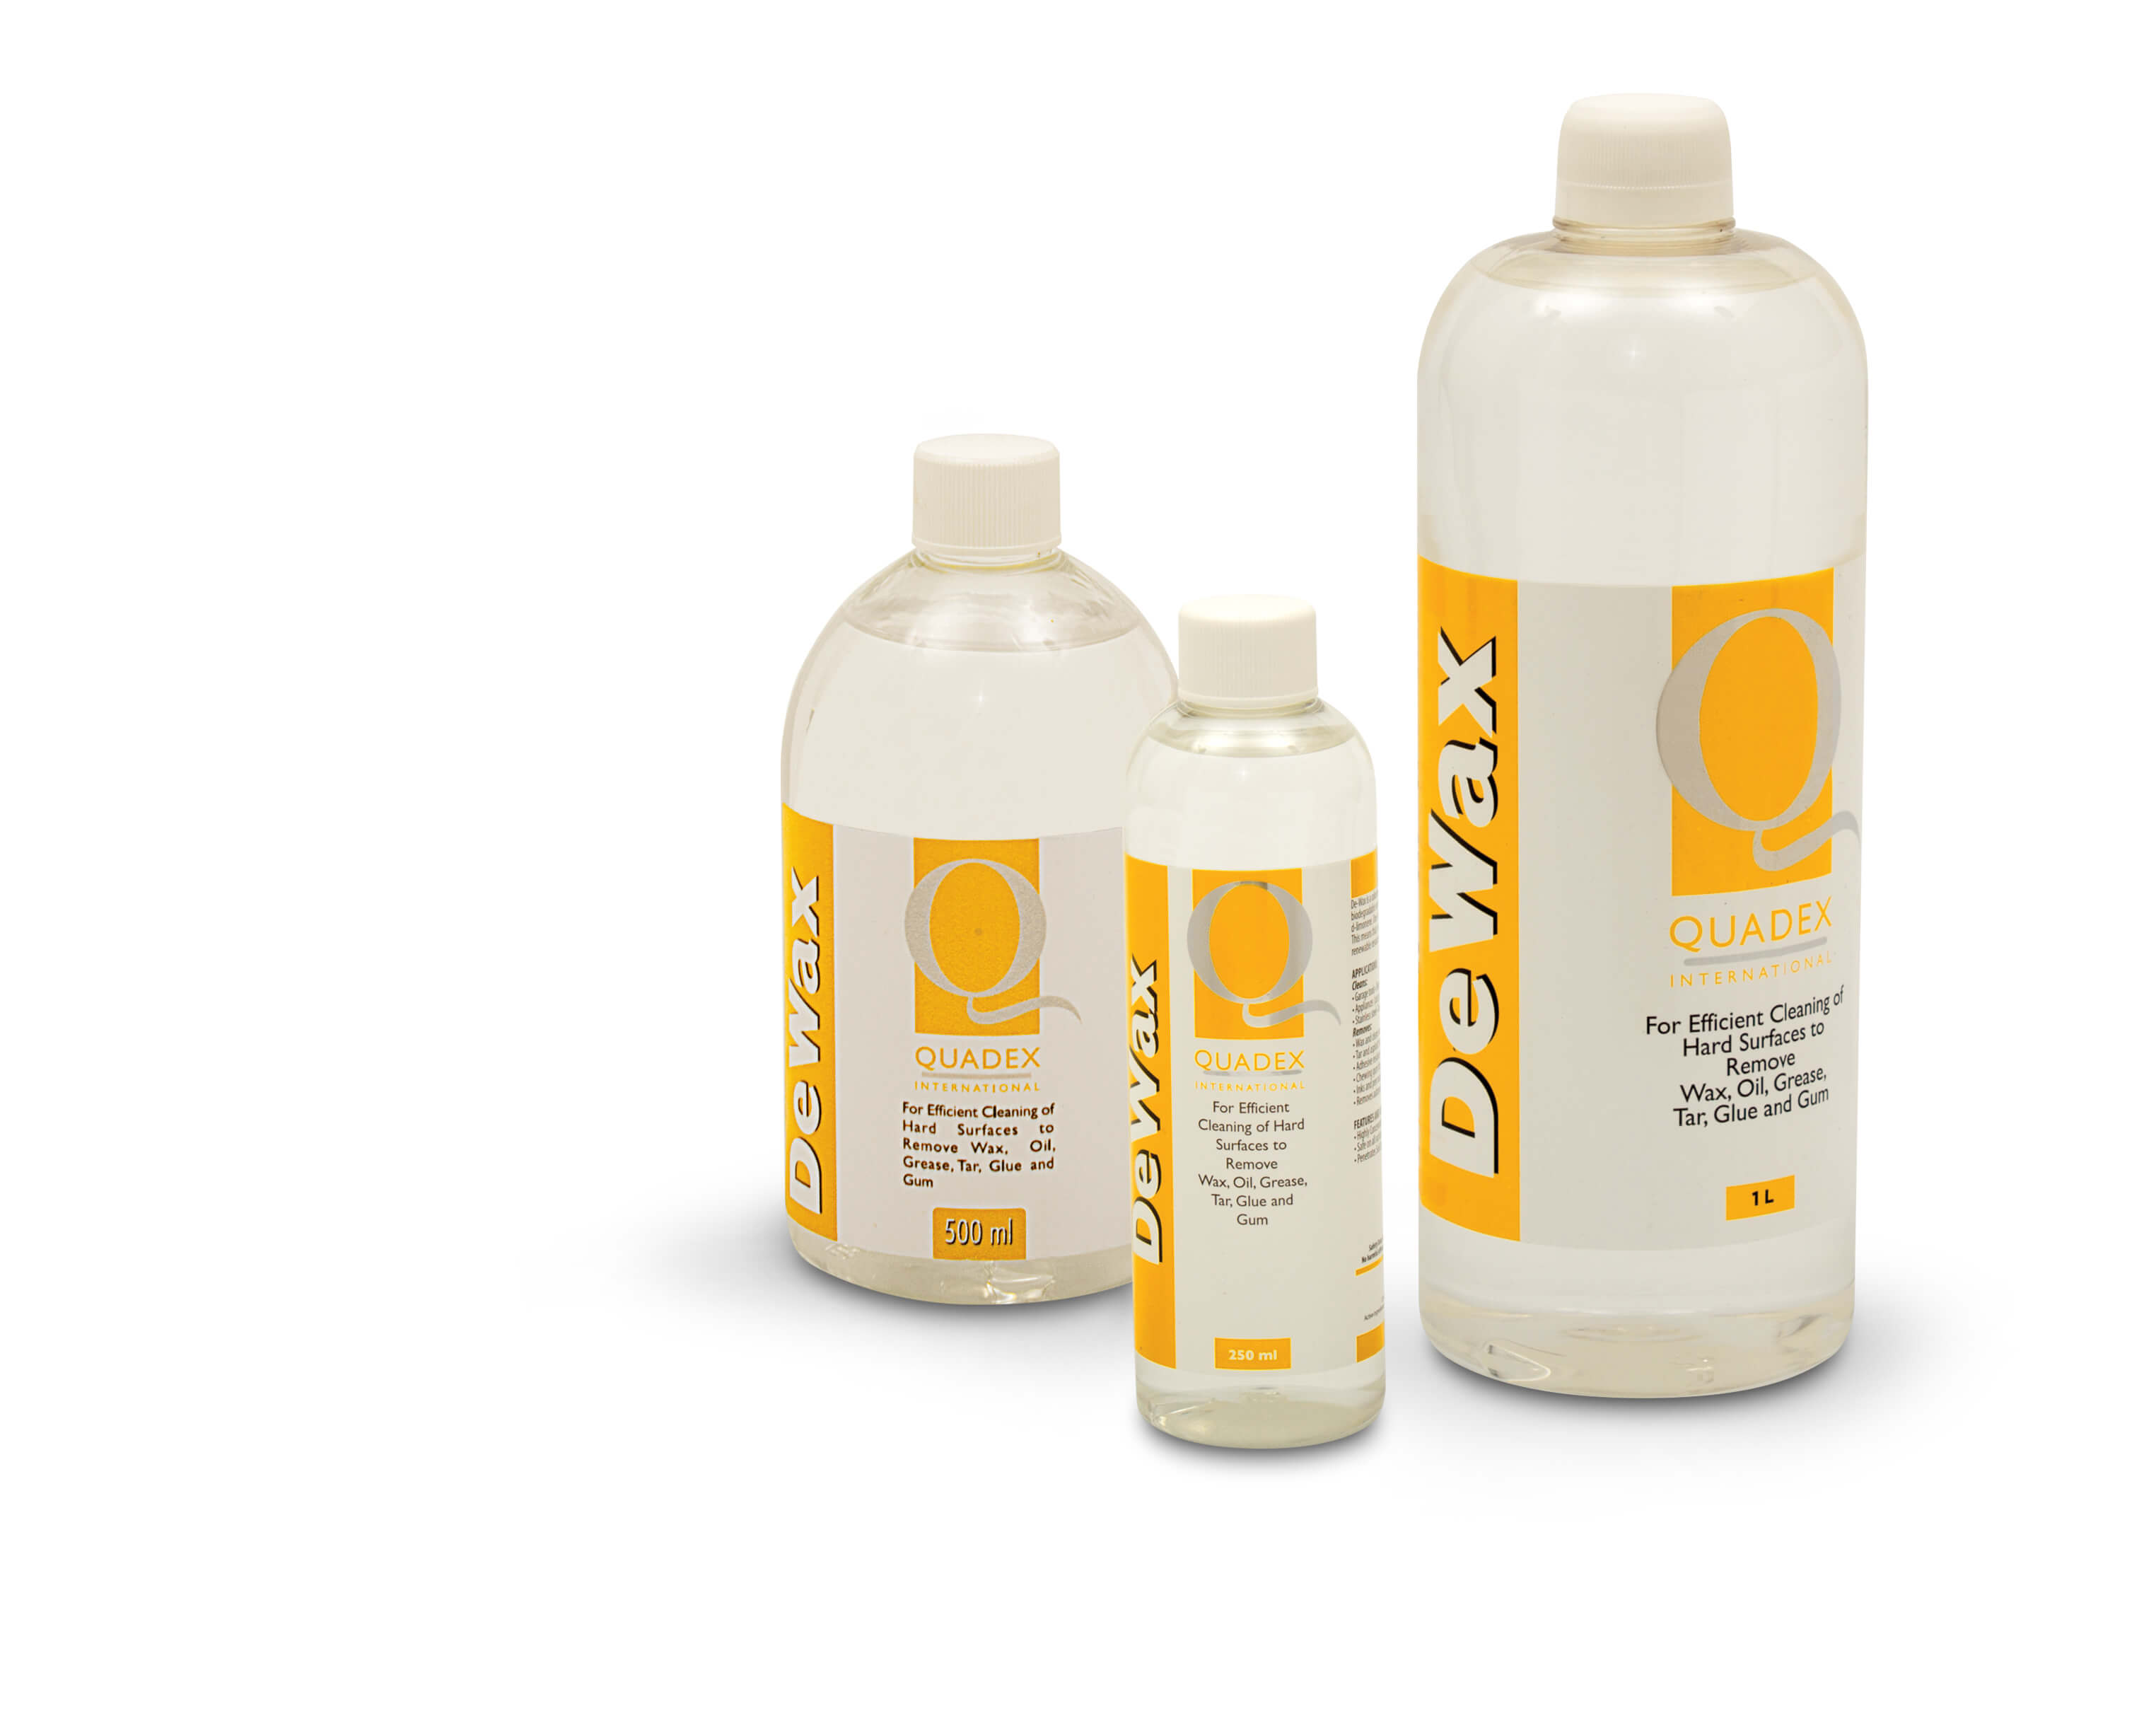 NATURAL READY-TO-USE CITRUS SOLVENT, REMOVES WAX & GLUE